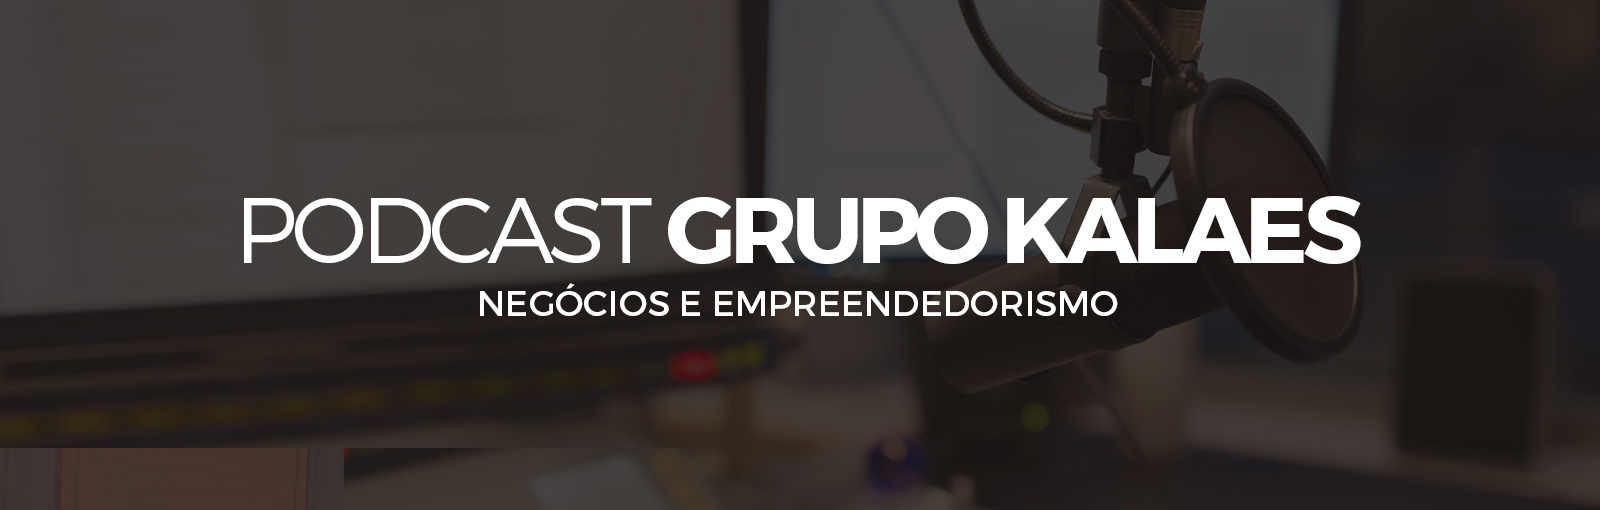 Podcast Grupo Kalaes